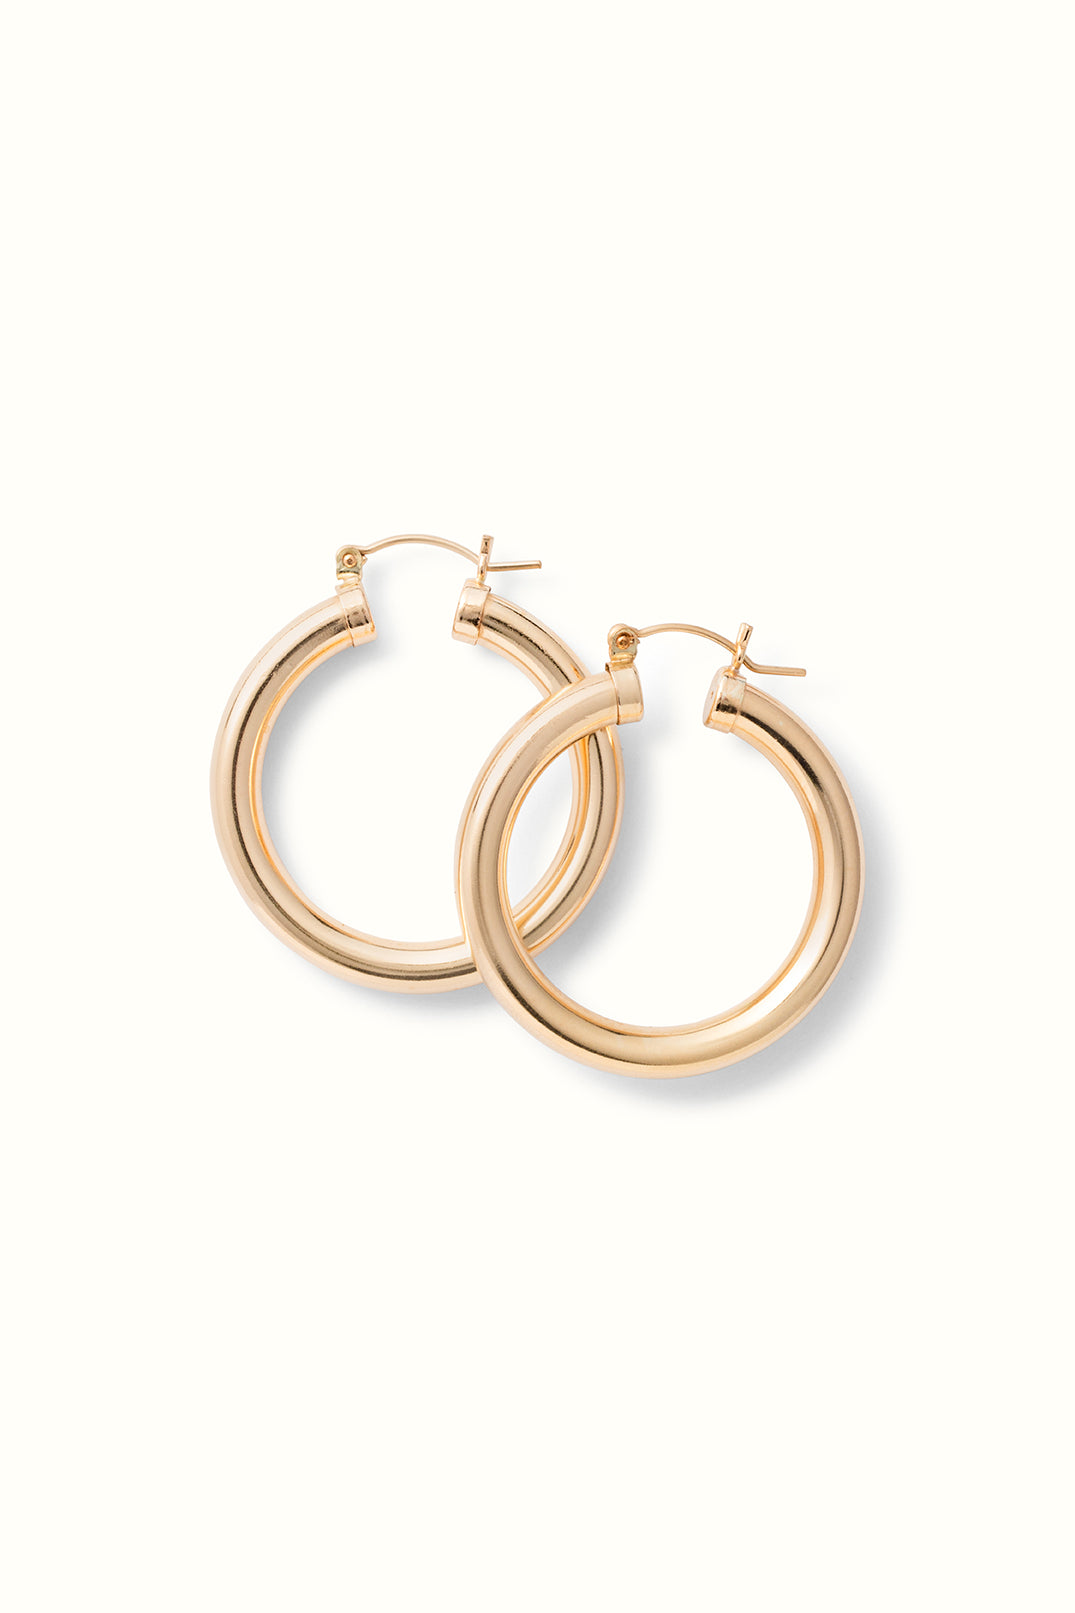 a set of large chunky gold filled hoop earrings lying on a white surface